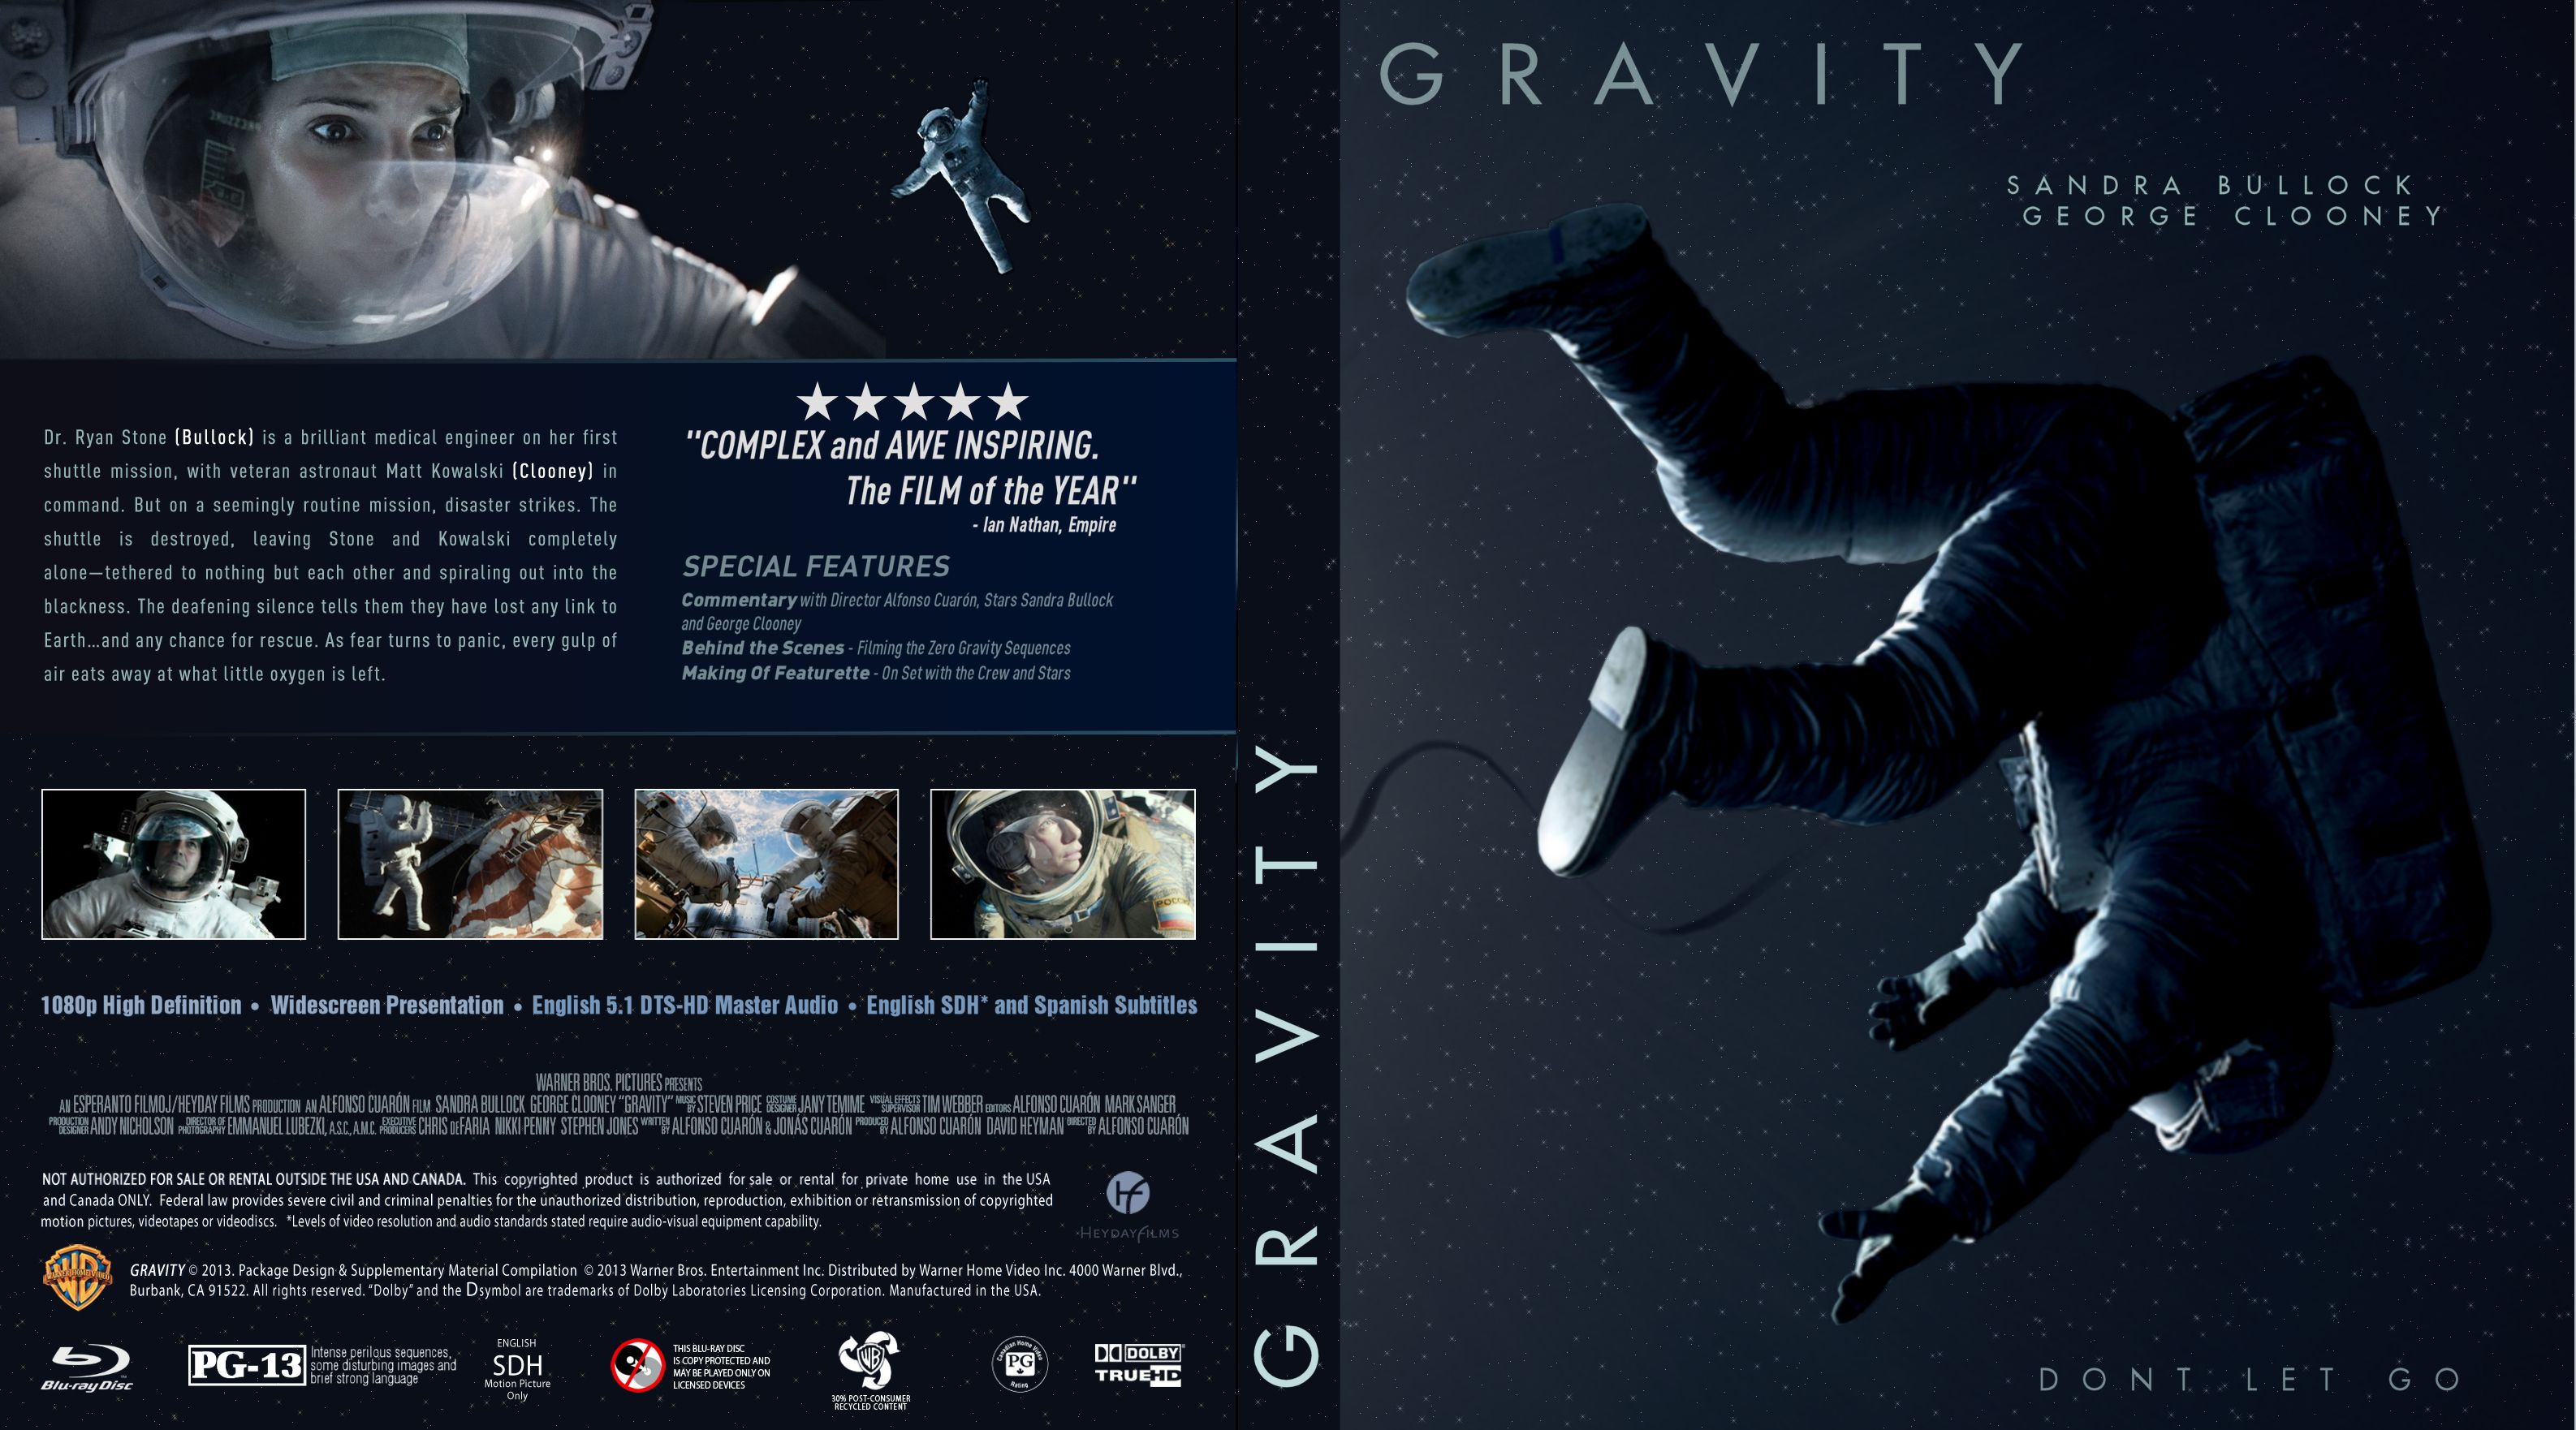 Capa Bluray Gravity